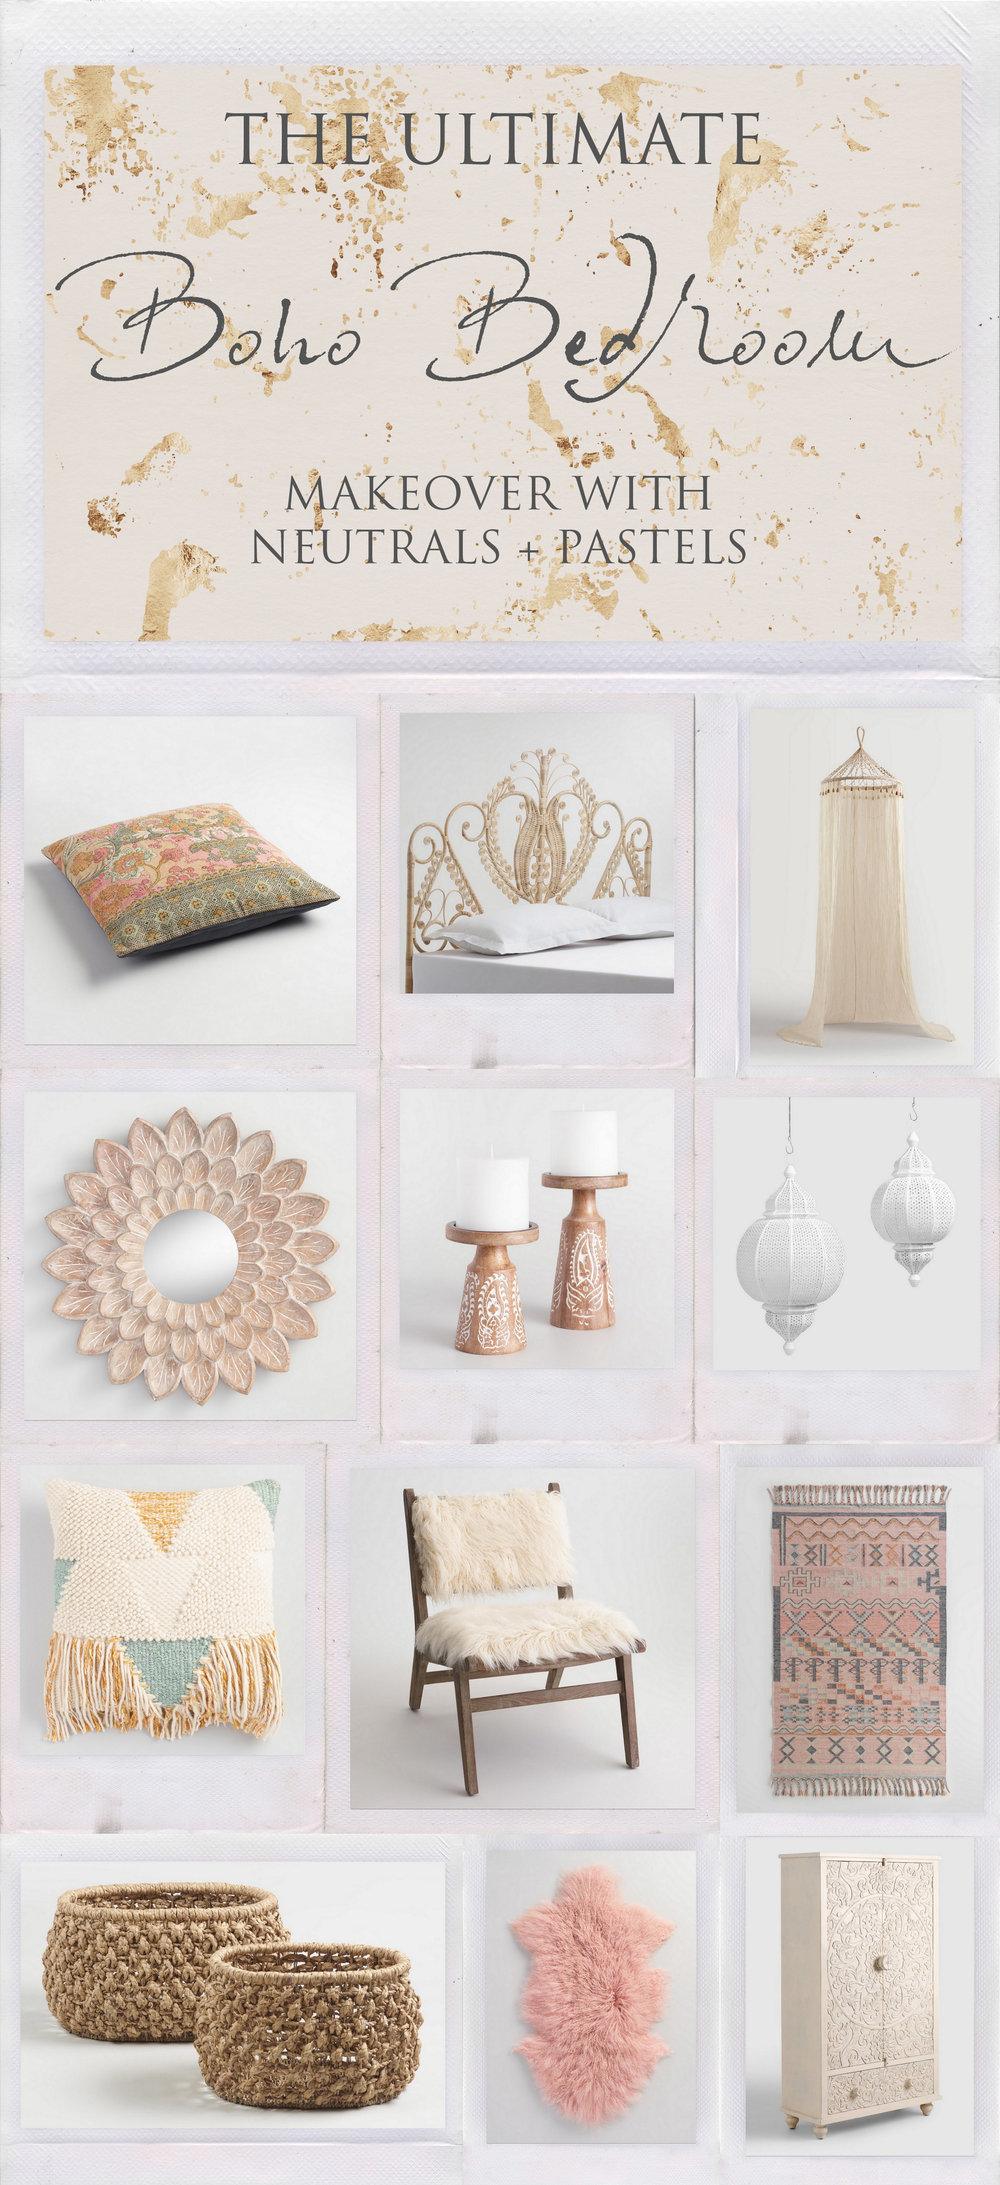 The Ultimate Boho Bedroom Makeover with Neutrals Pastels